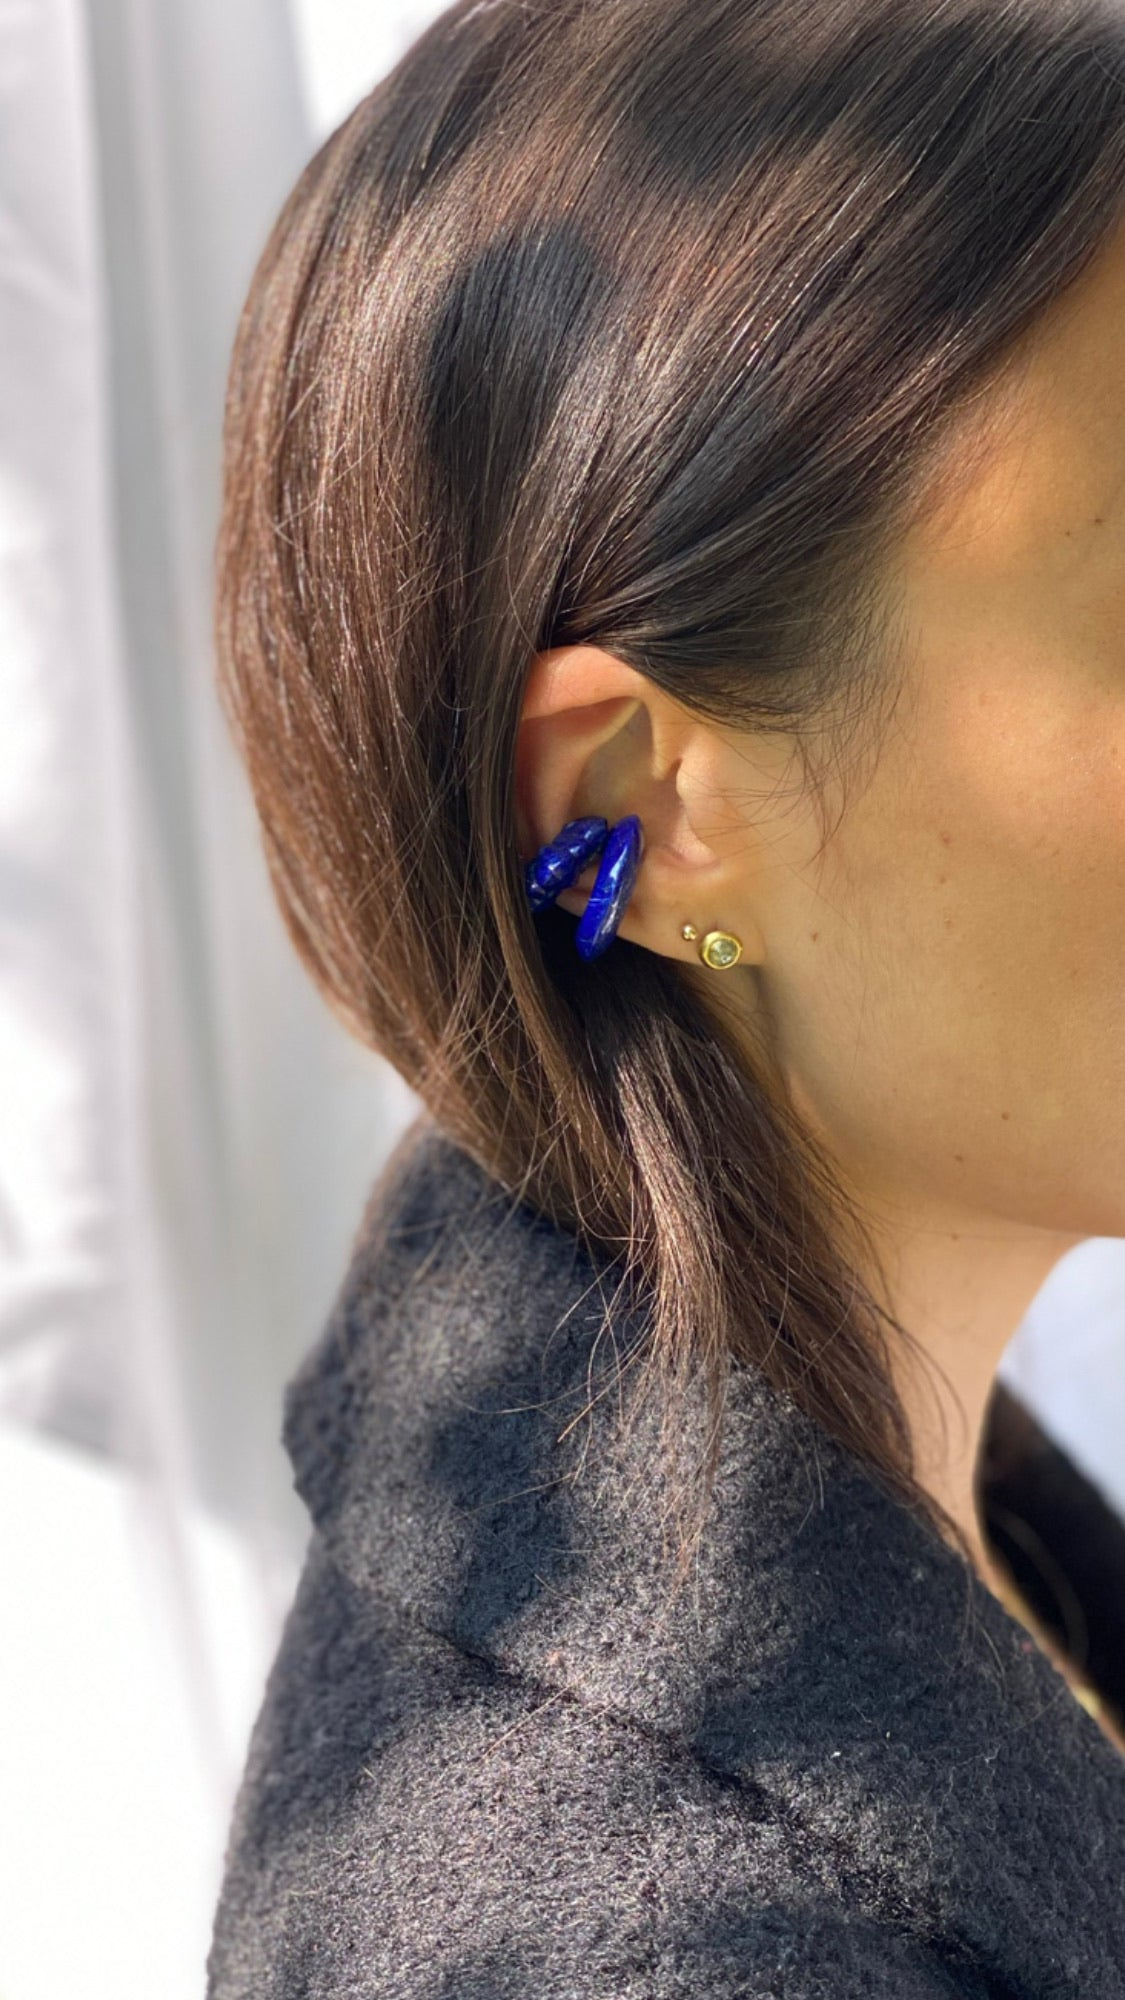 Mountain Ear Cuff - Lapis